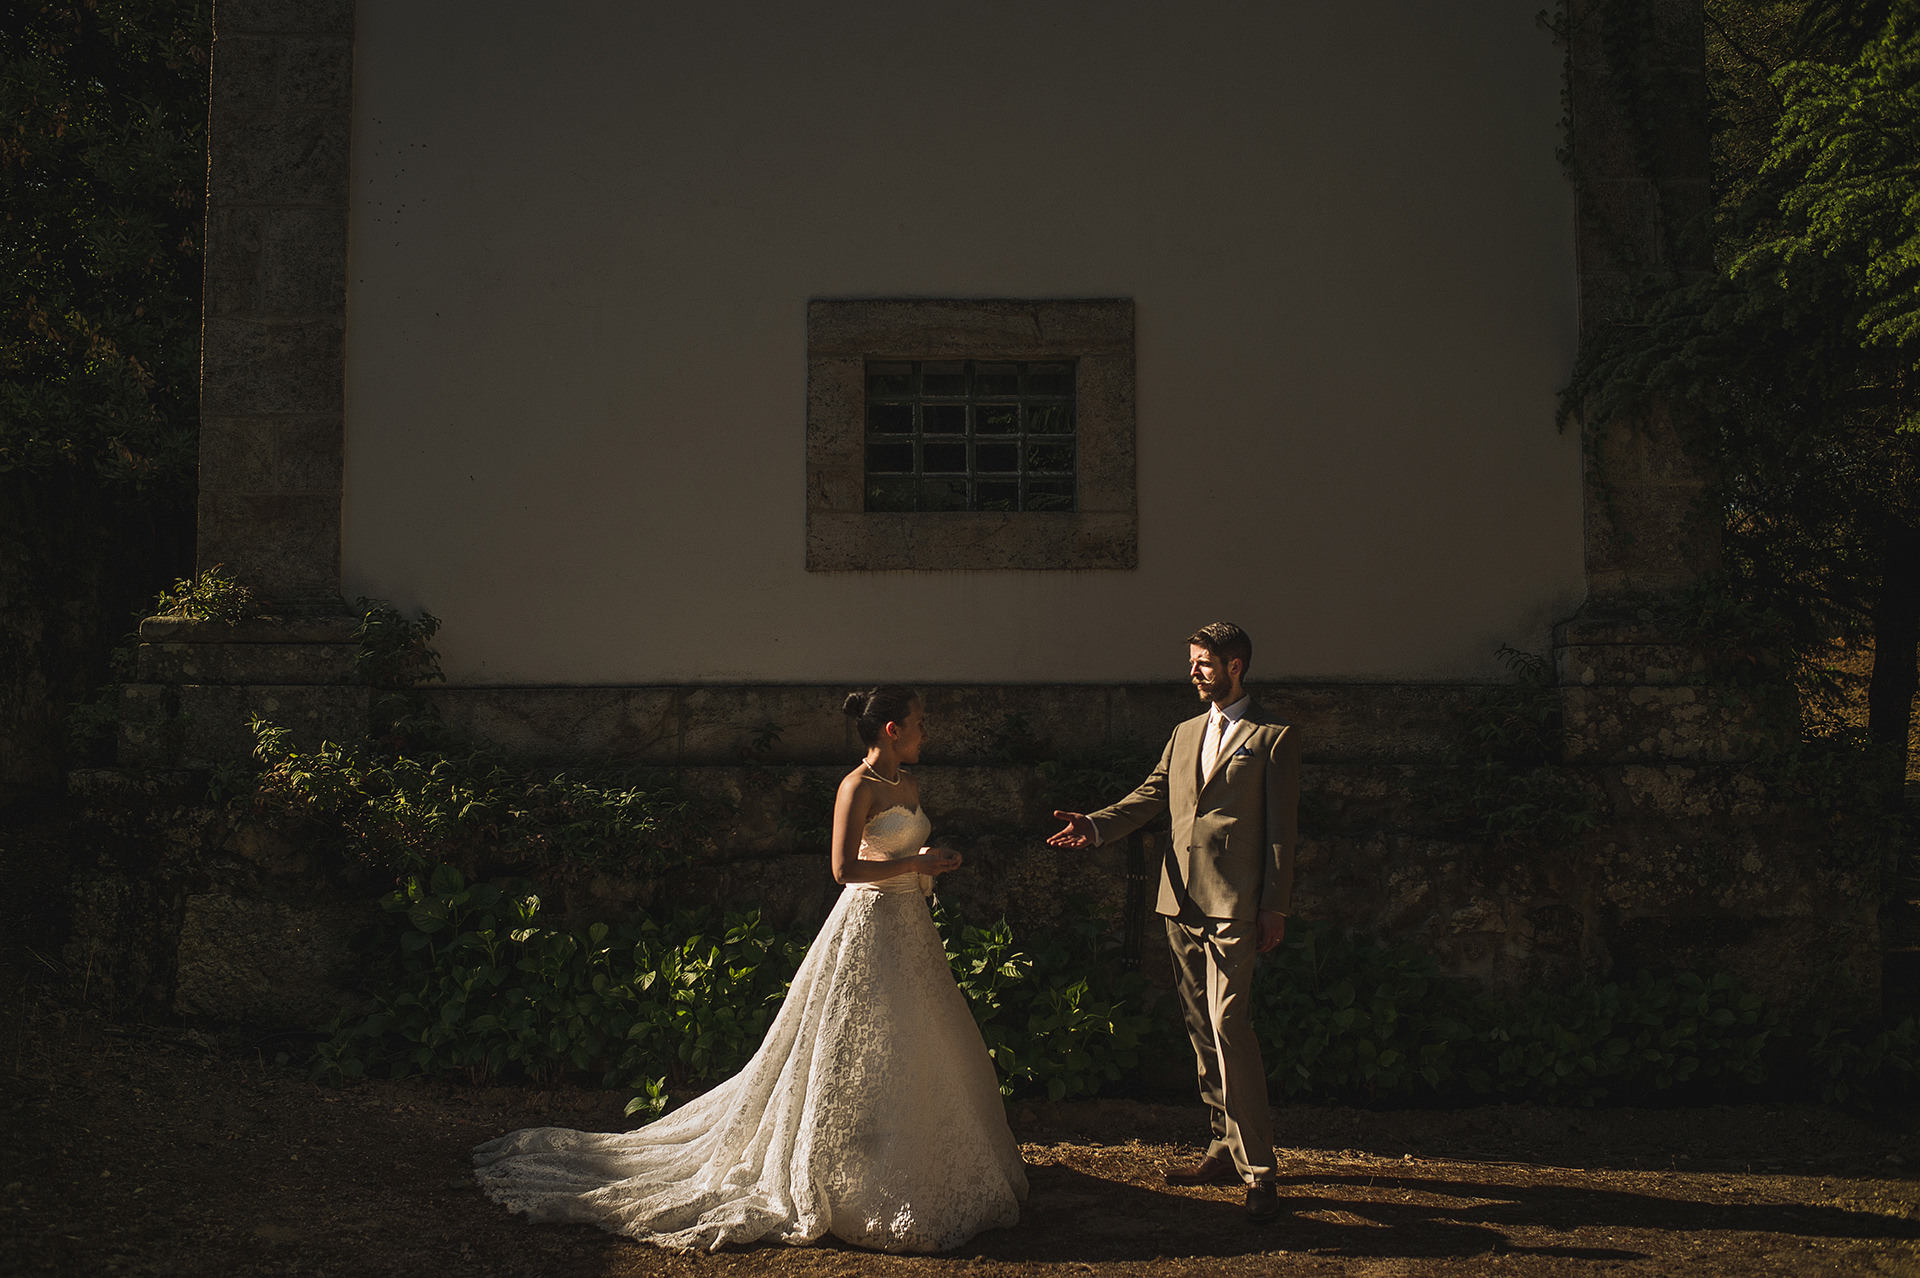 duoro-portugal-wedding-photographer.jpg